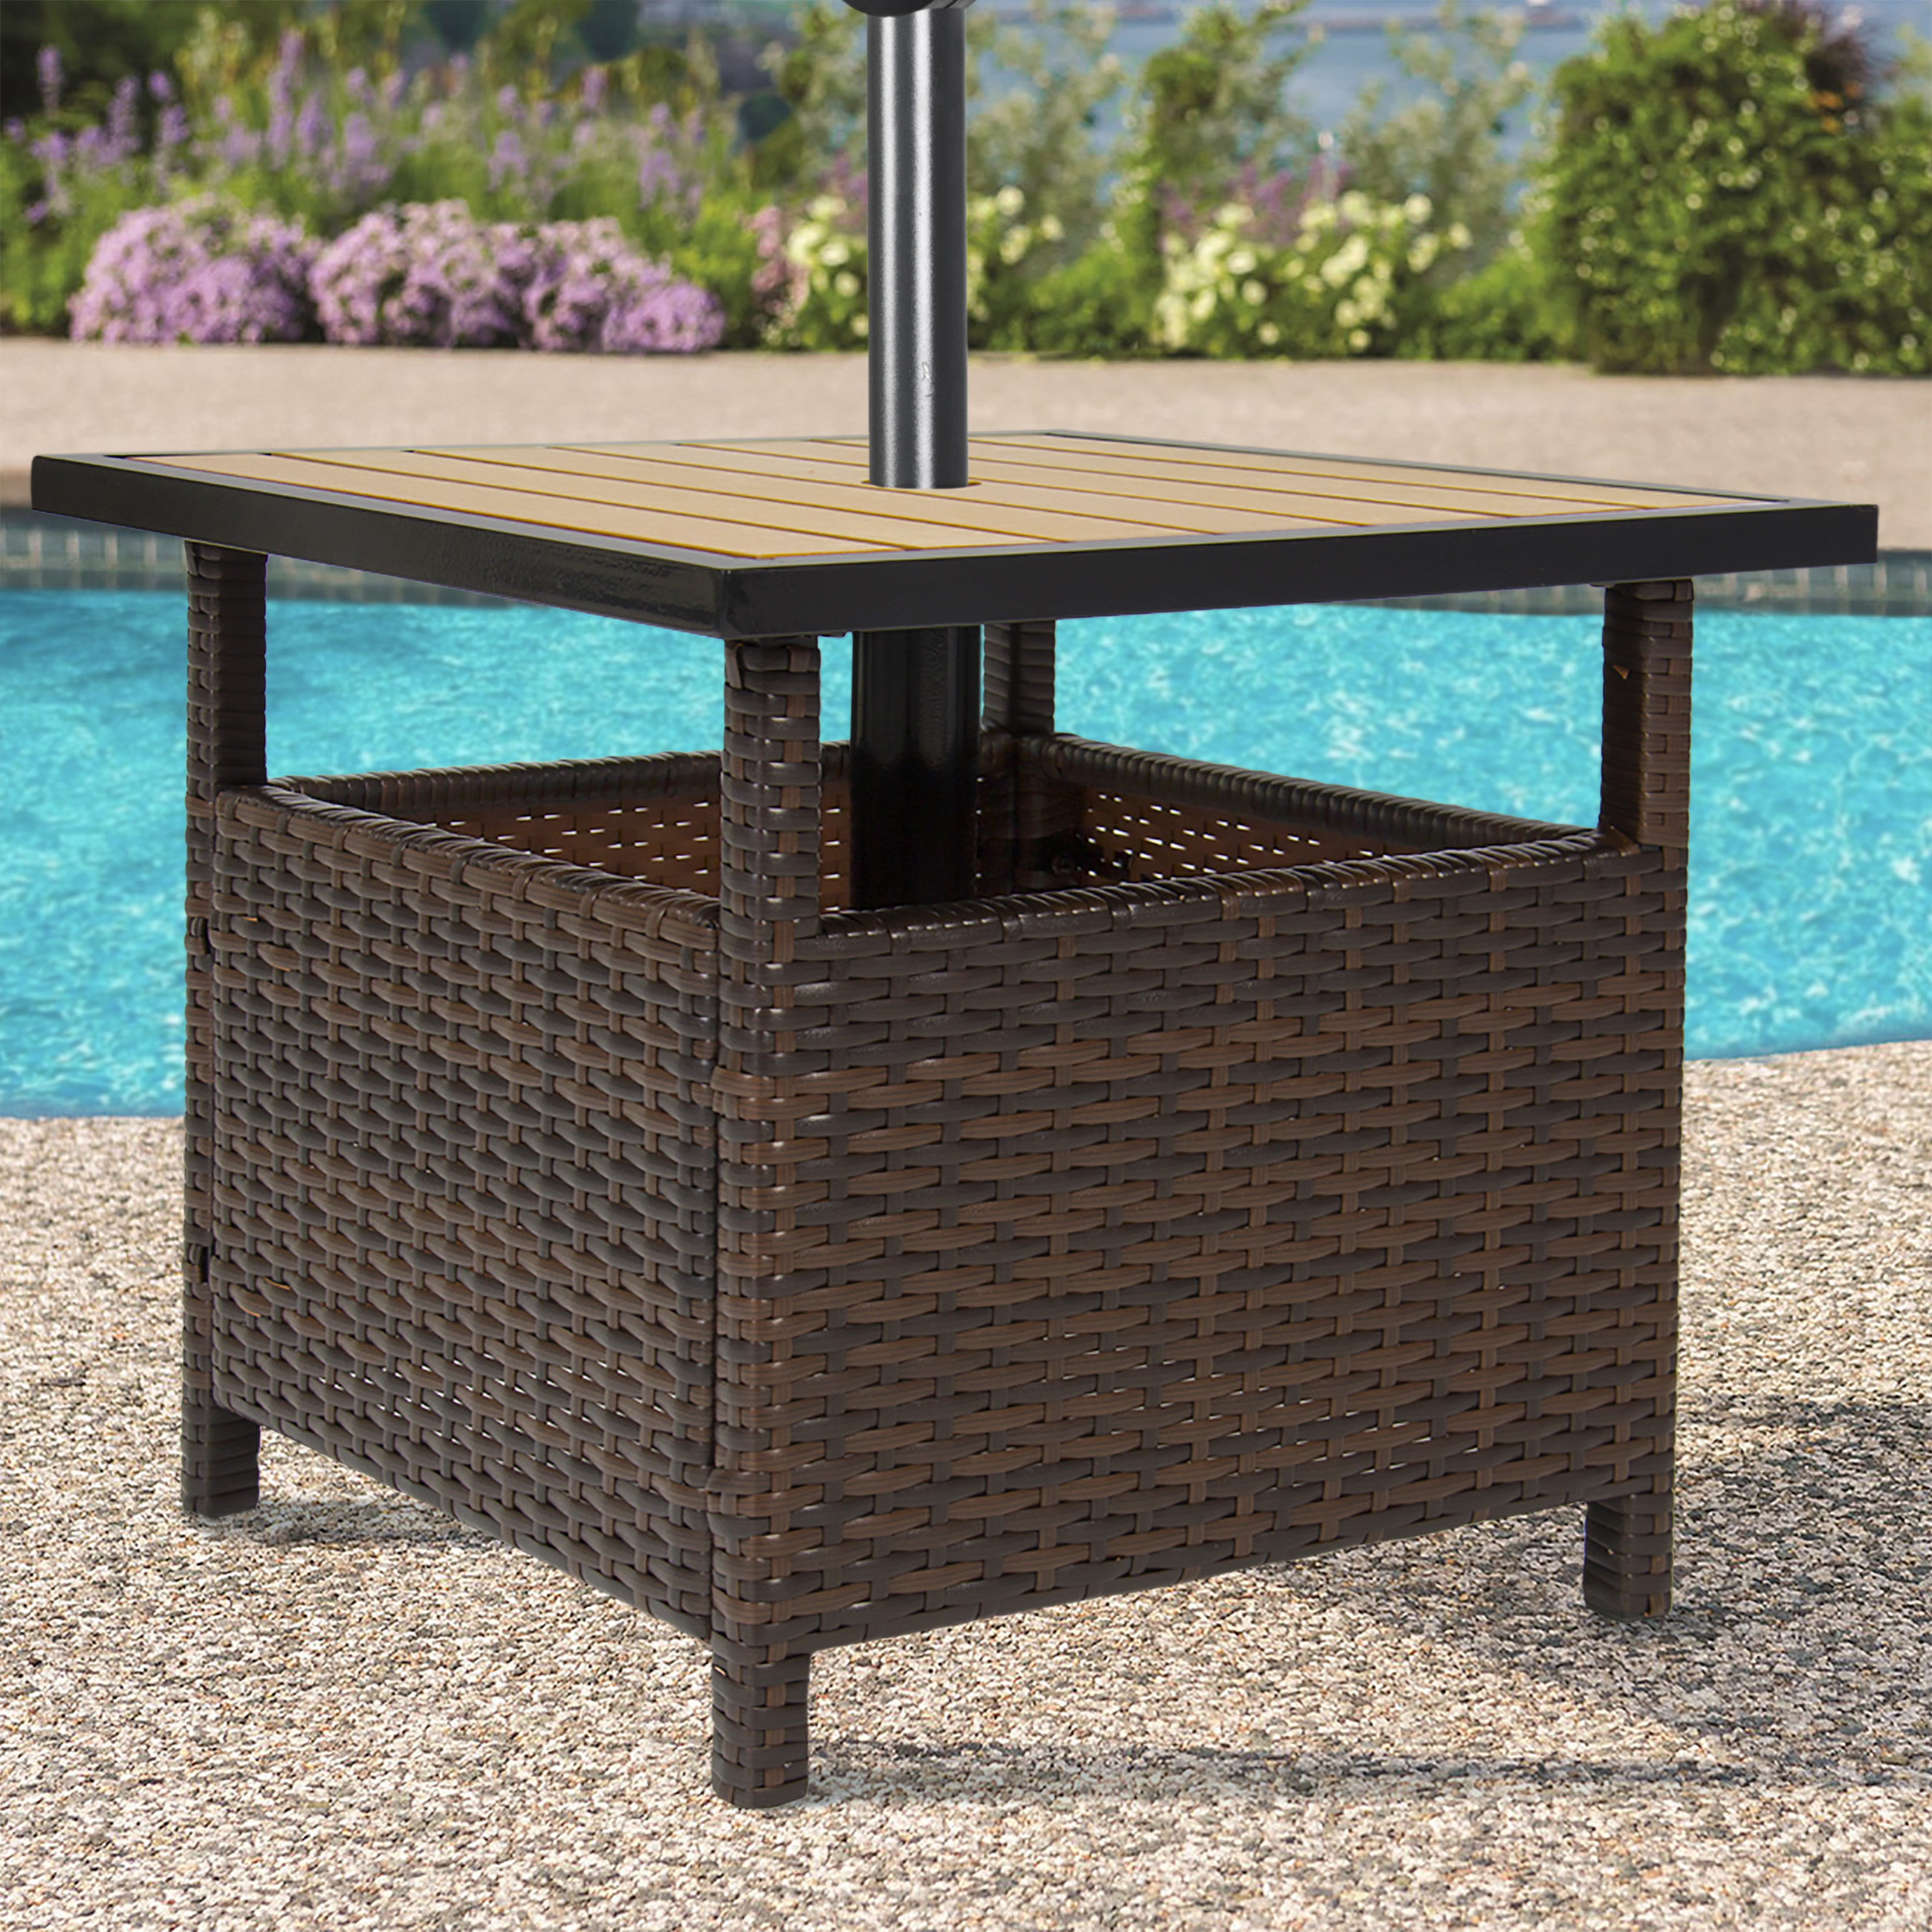 Beau Best Choice Products Outdoor Furniture Wicker Rattan Patio Umbrella Stand  Table For Garden, Pool Deck